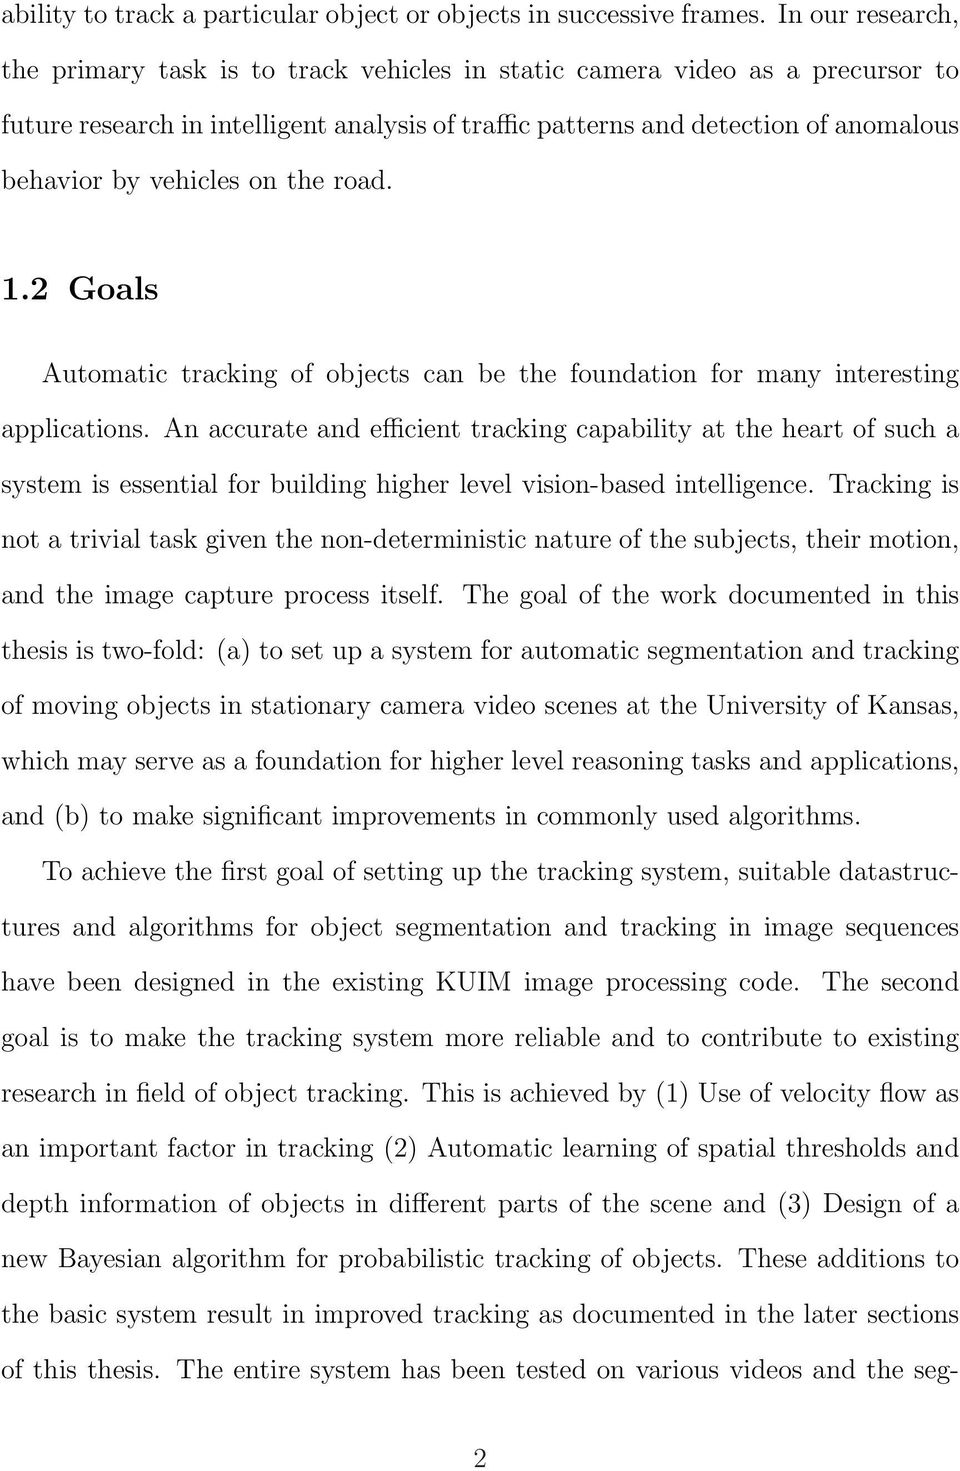 vehicles on the road. 1.2 Goals Automatic tracking of objects can be the foundation for many interesting applications.